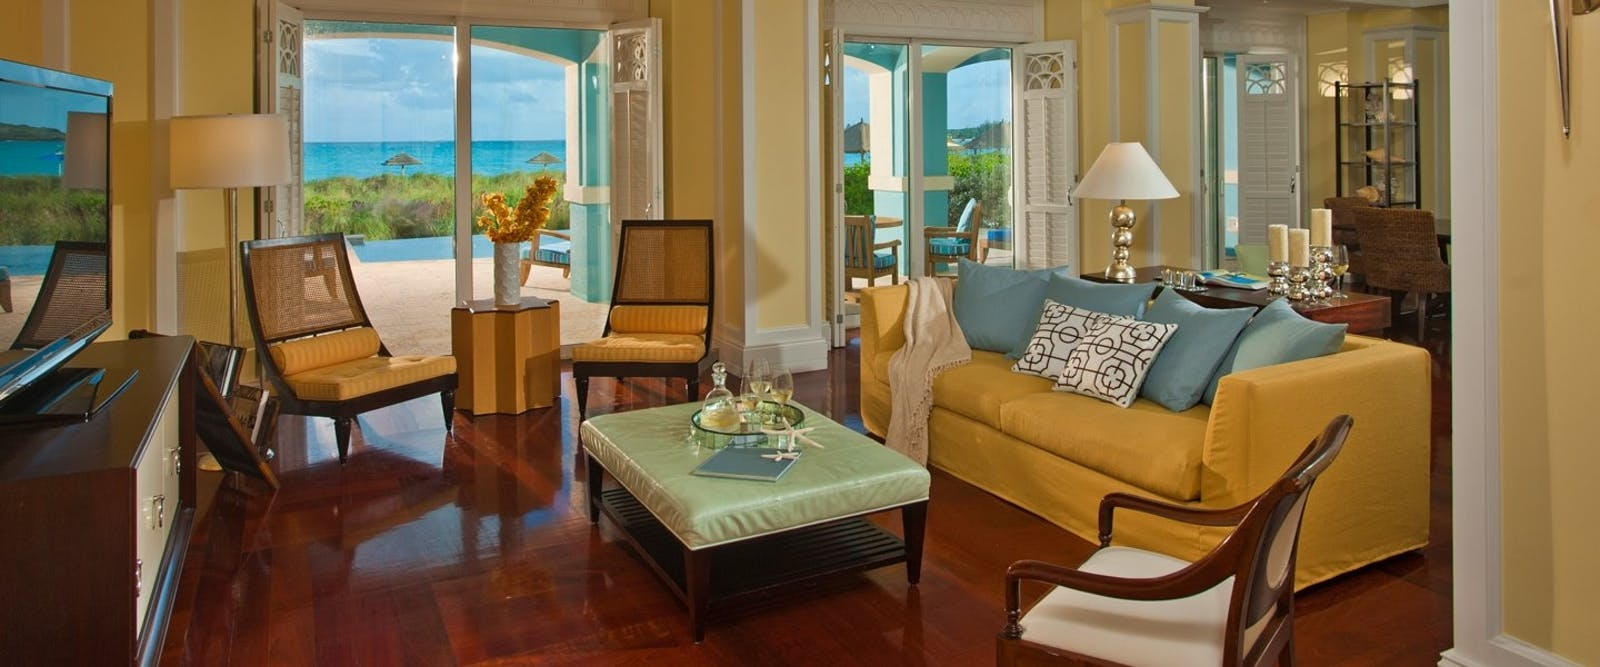 Royal Estate Beachfront Villa Suite with Pool at Sandals Emerald Bay Golf, Tennis & Spa Resort, Bahamas, Caribbean